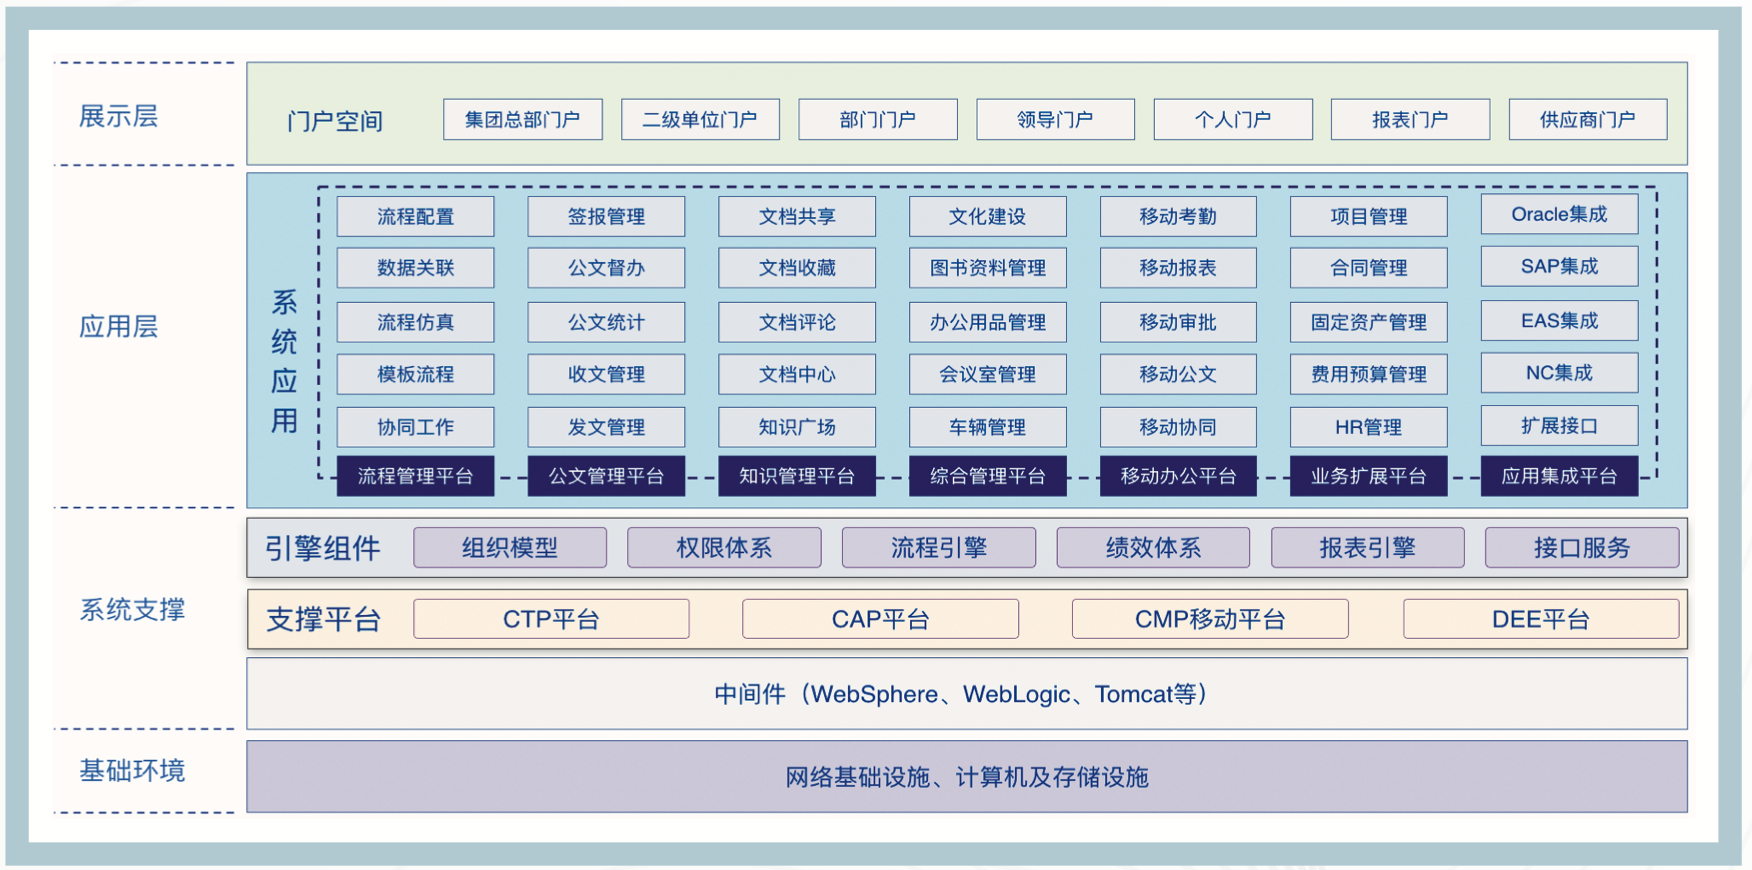 WX20210106-101955@2x.png